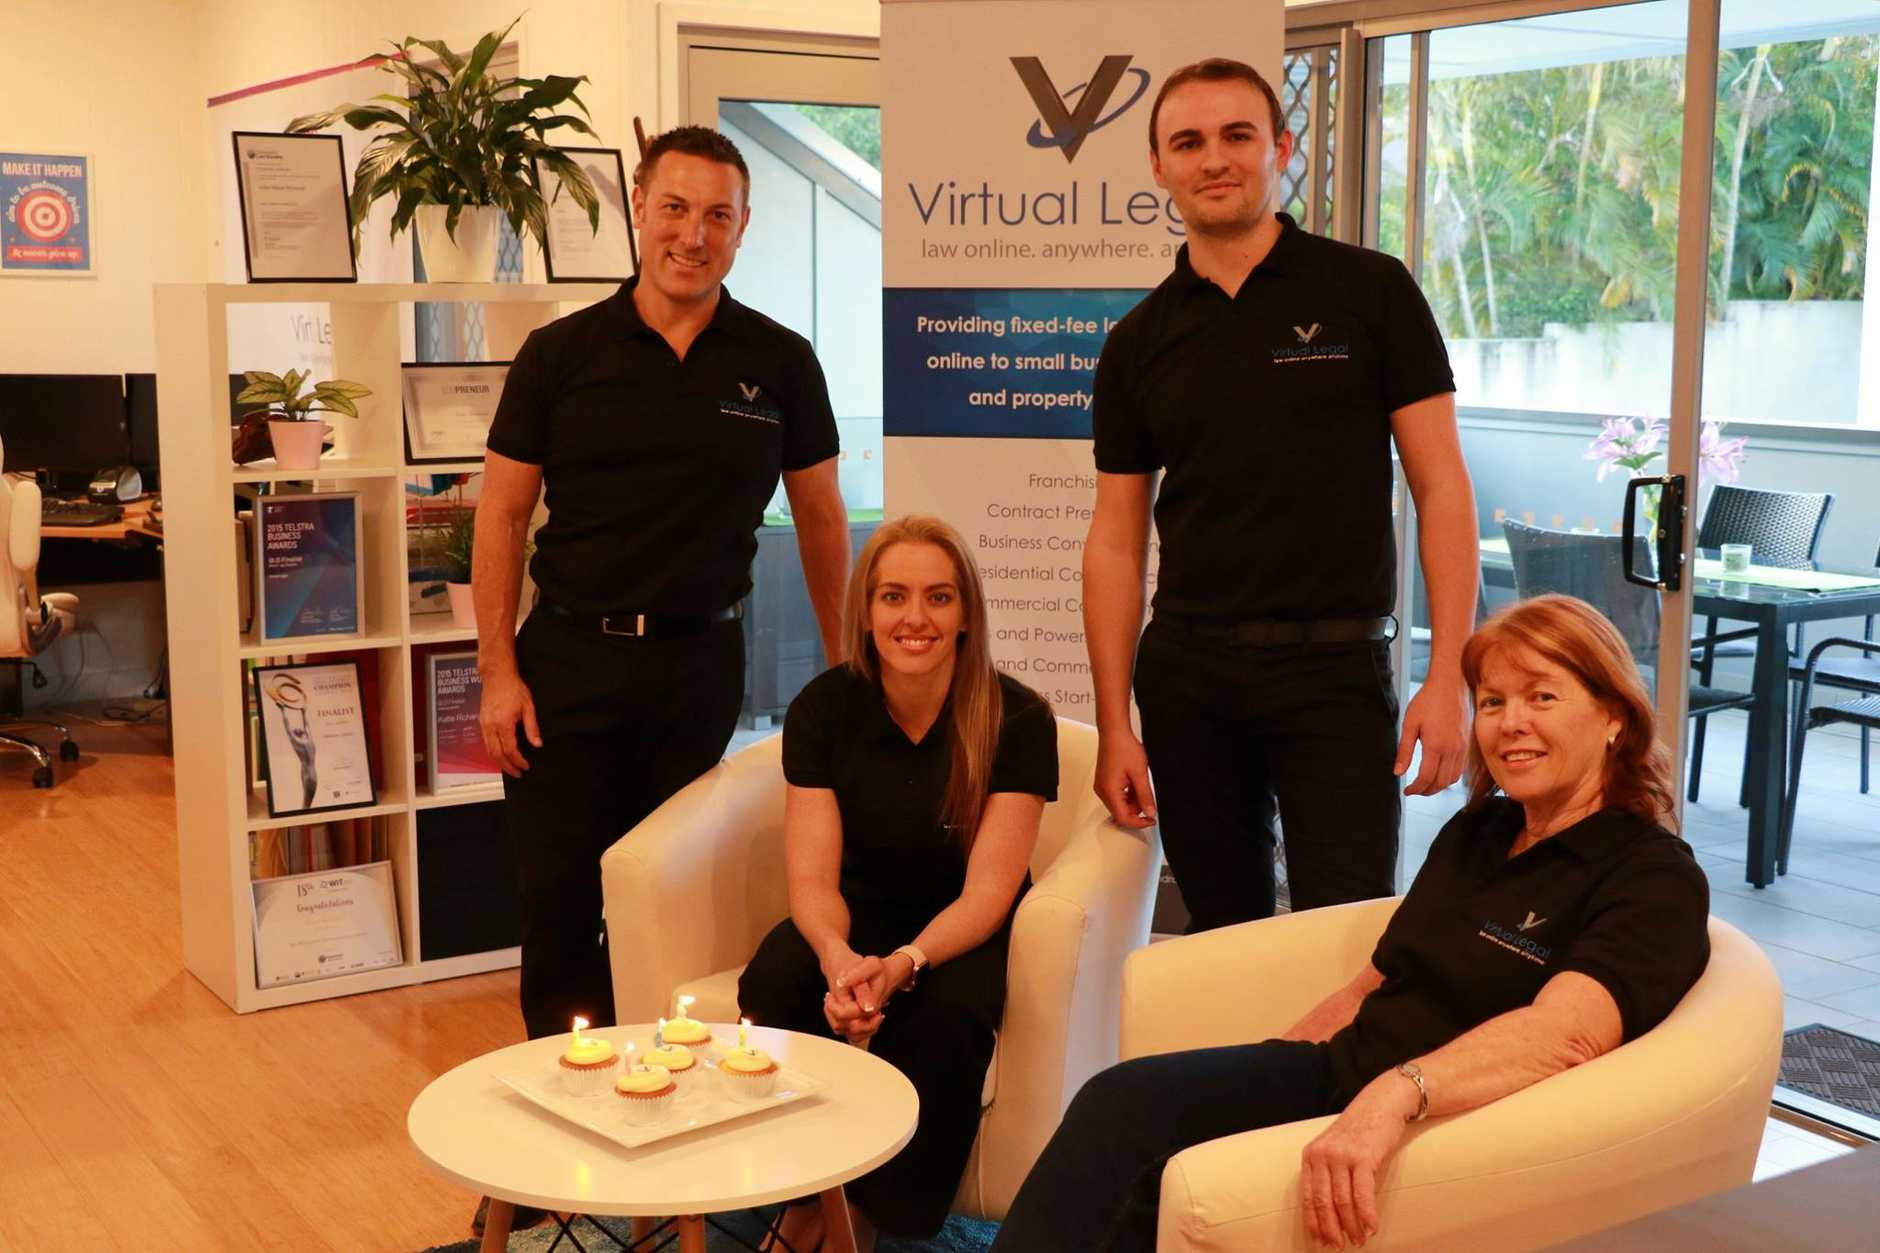 The Virtual Legal team (from left) Shane Lep, Katie Richards, Chris Burling and Meryl Shand.